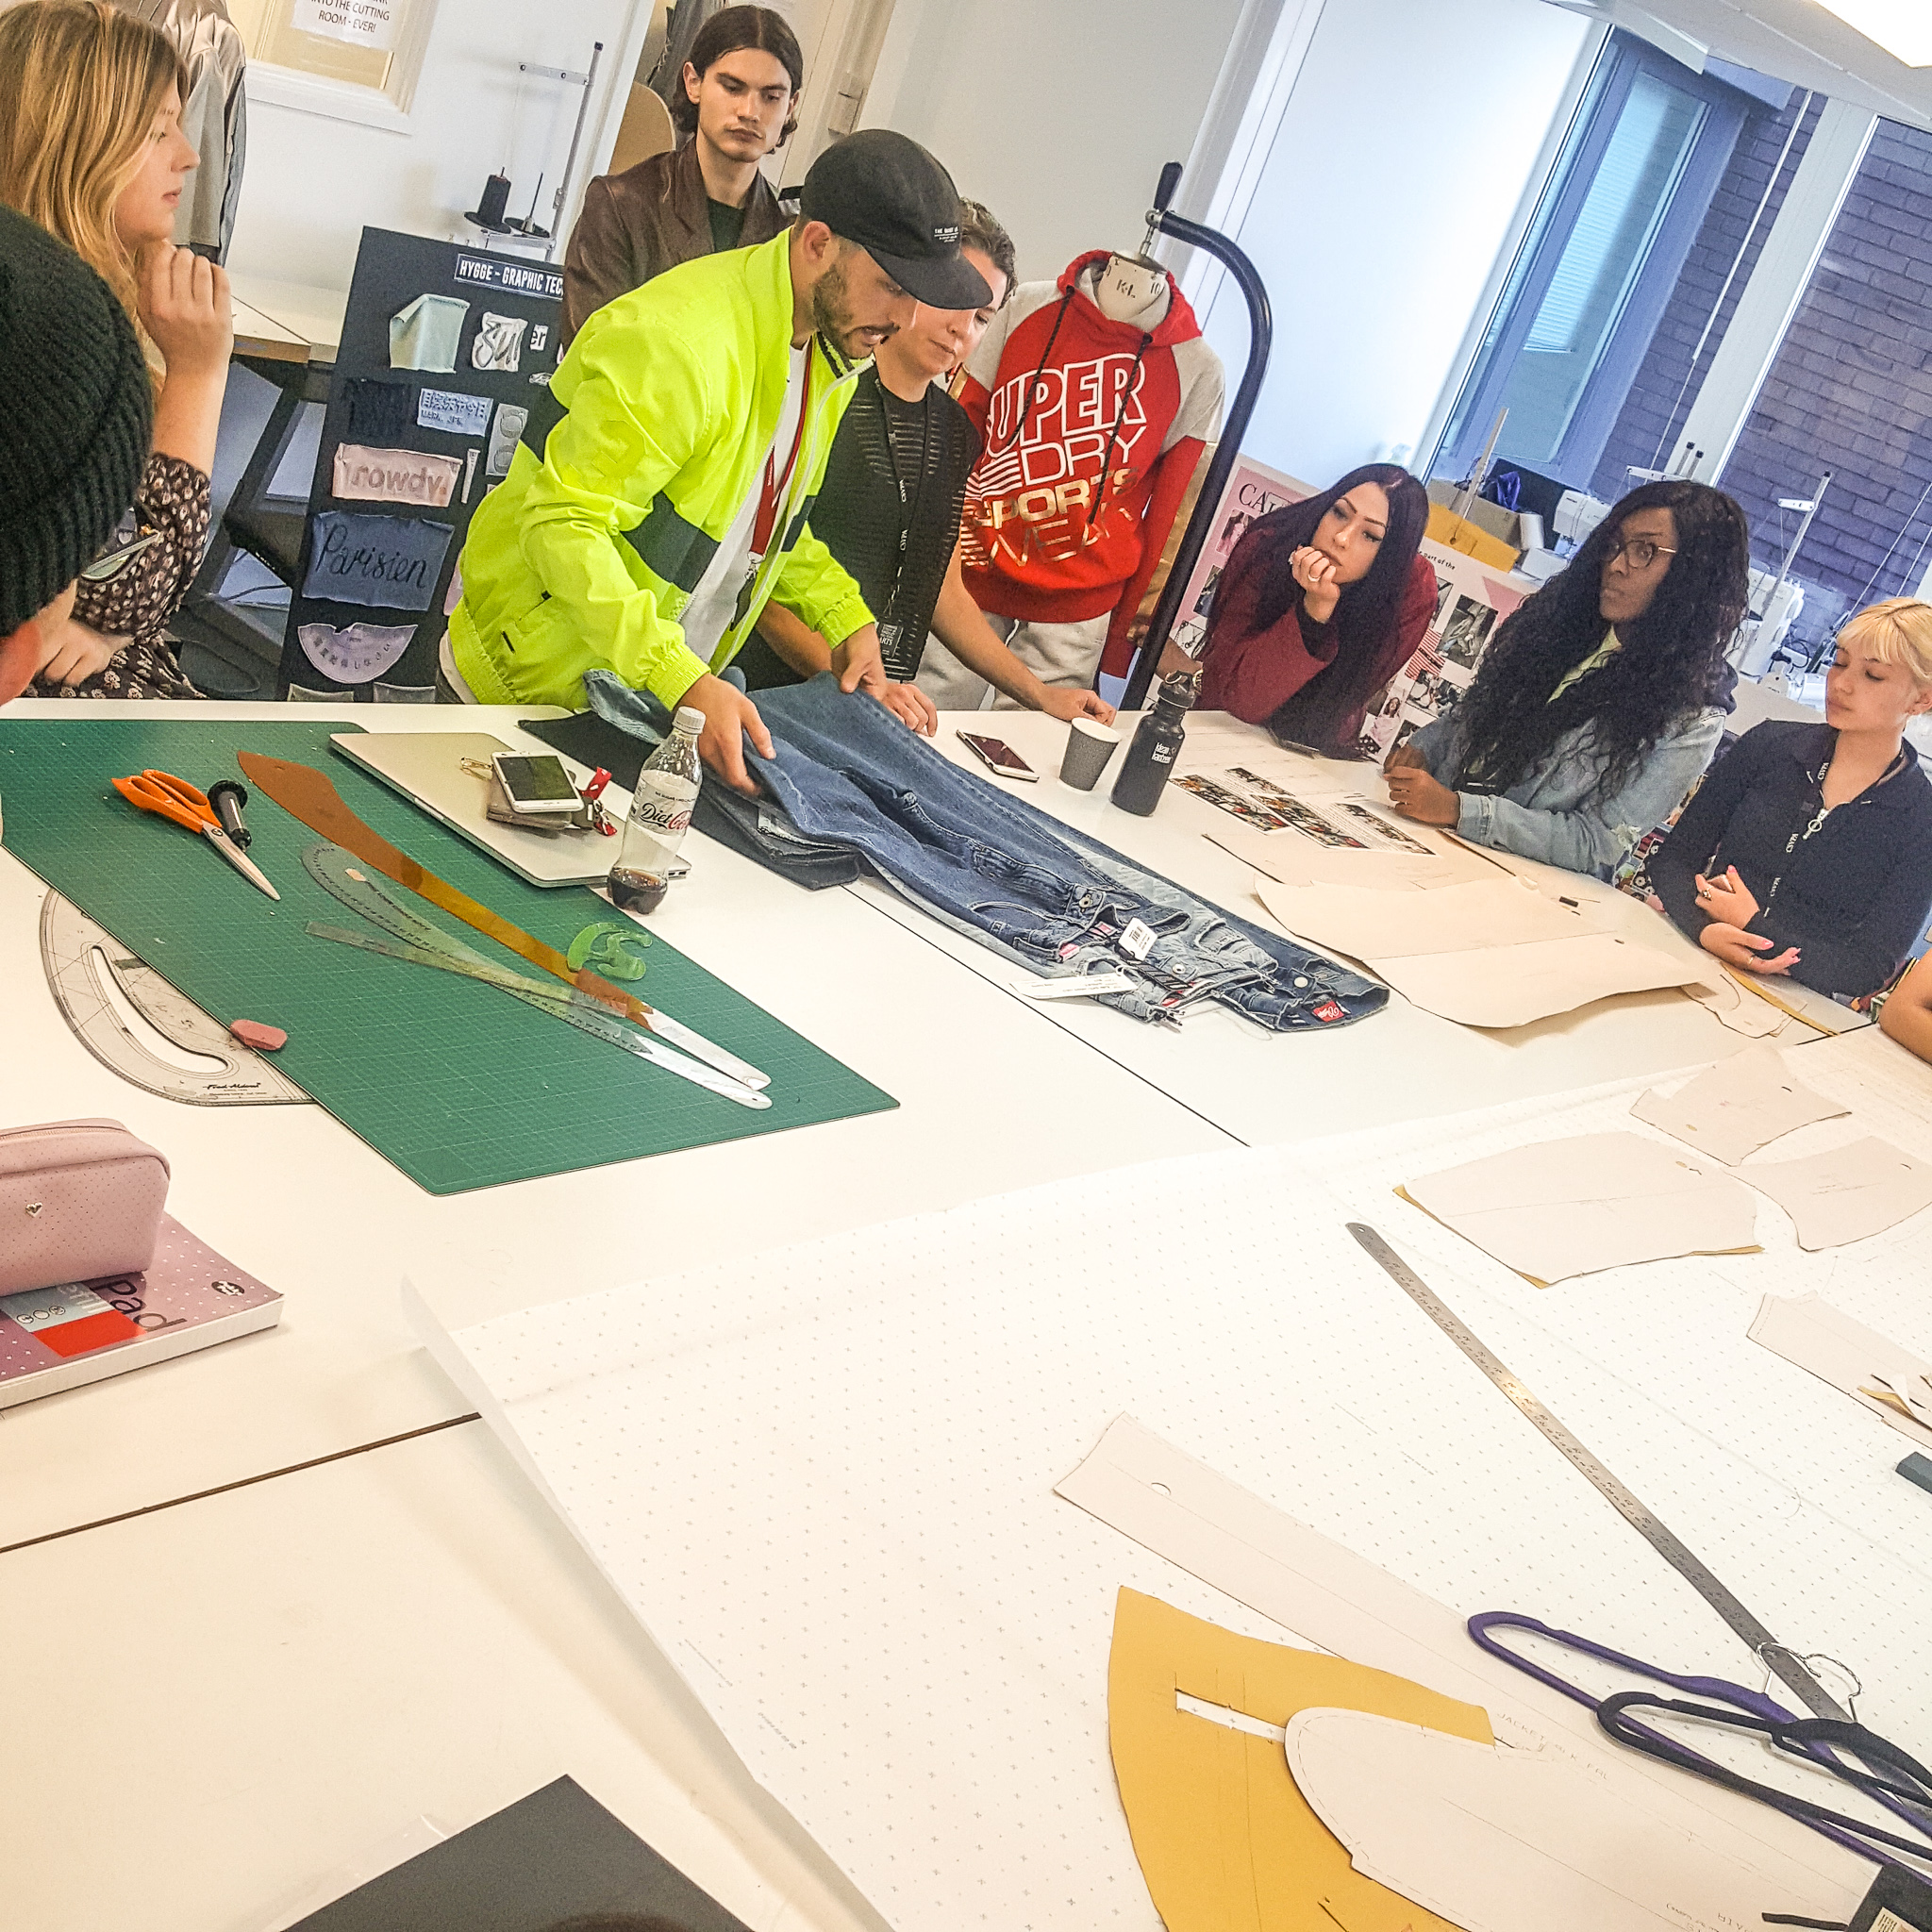 Ba Fashion Students Design Clothing With Superdry